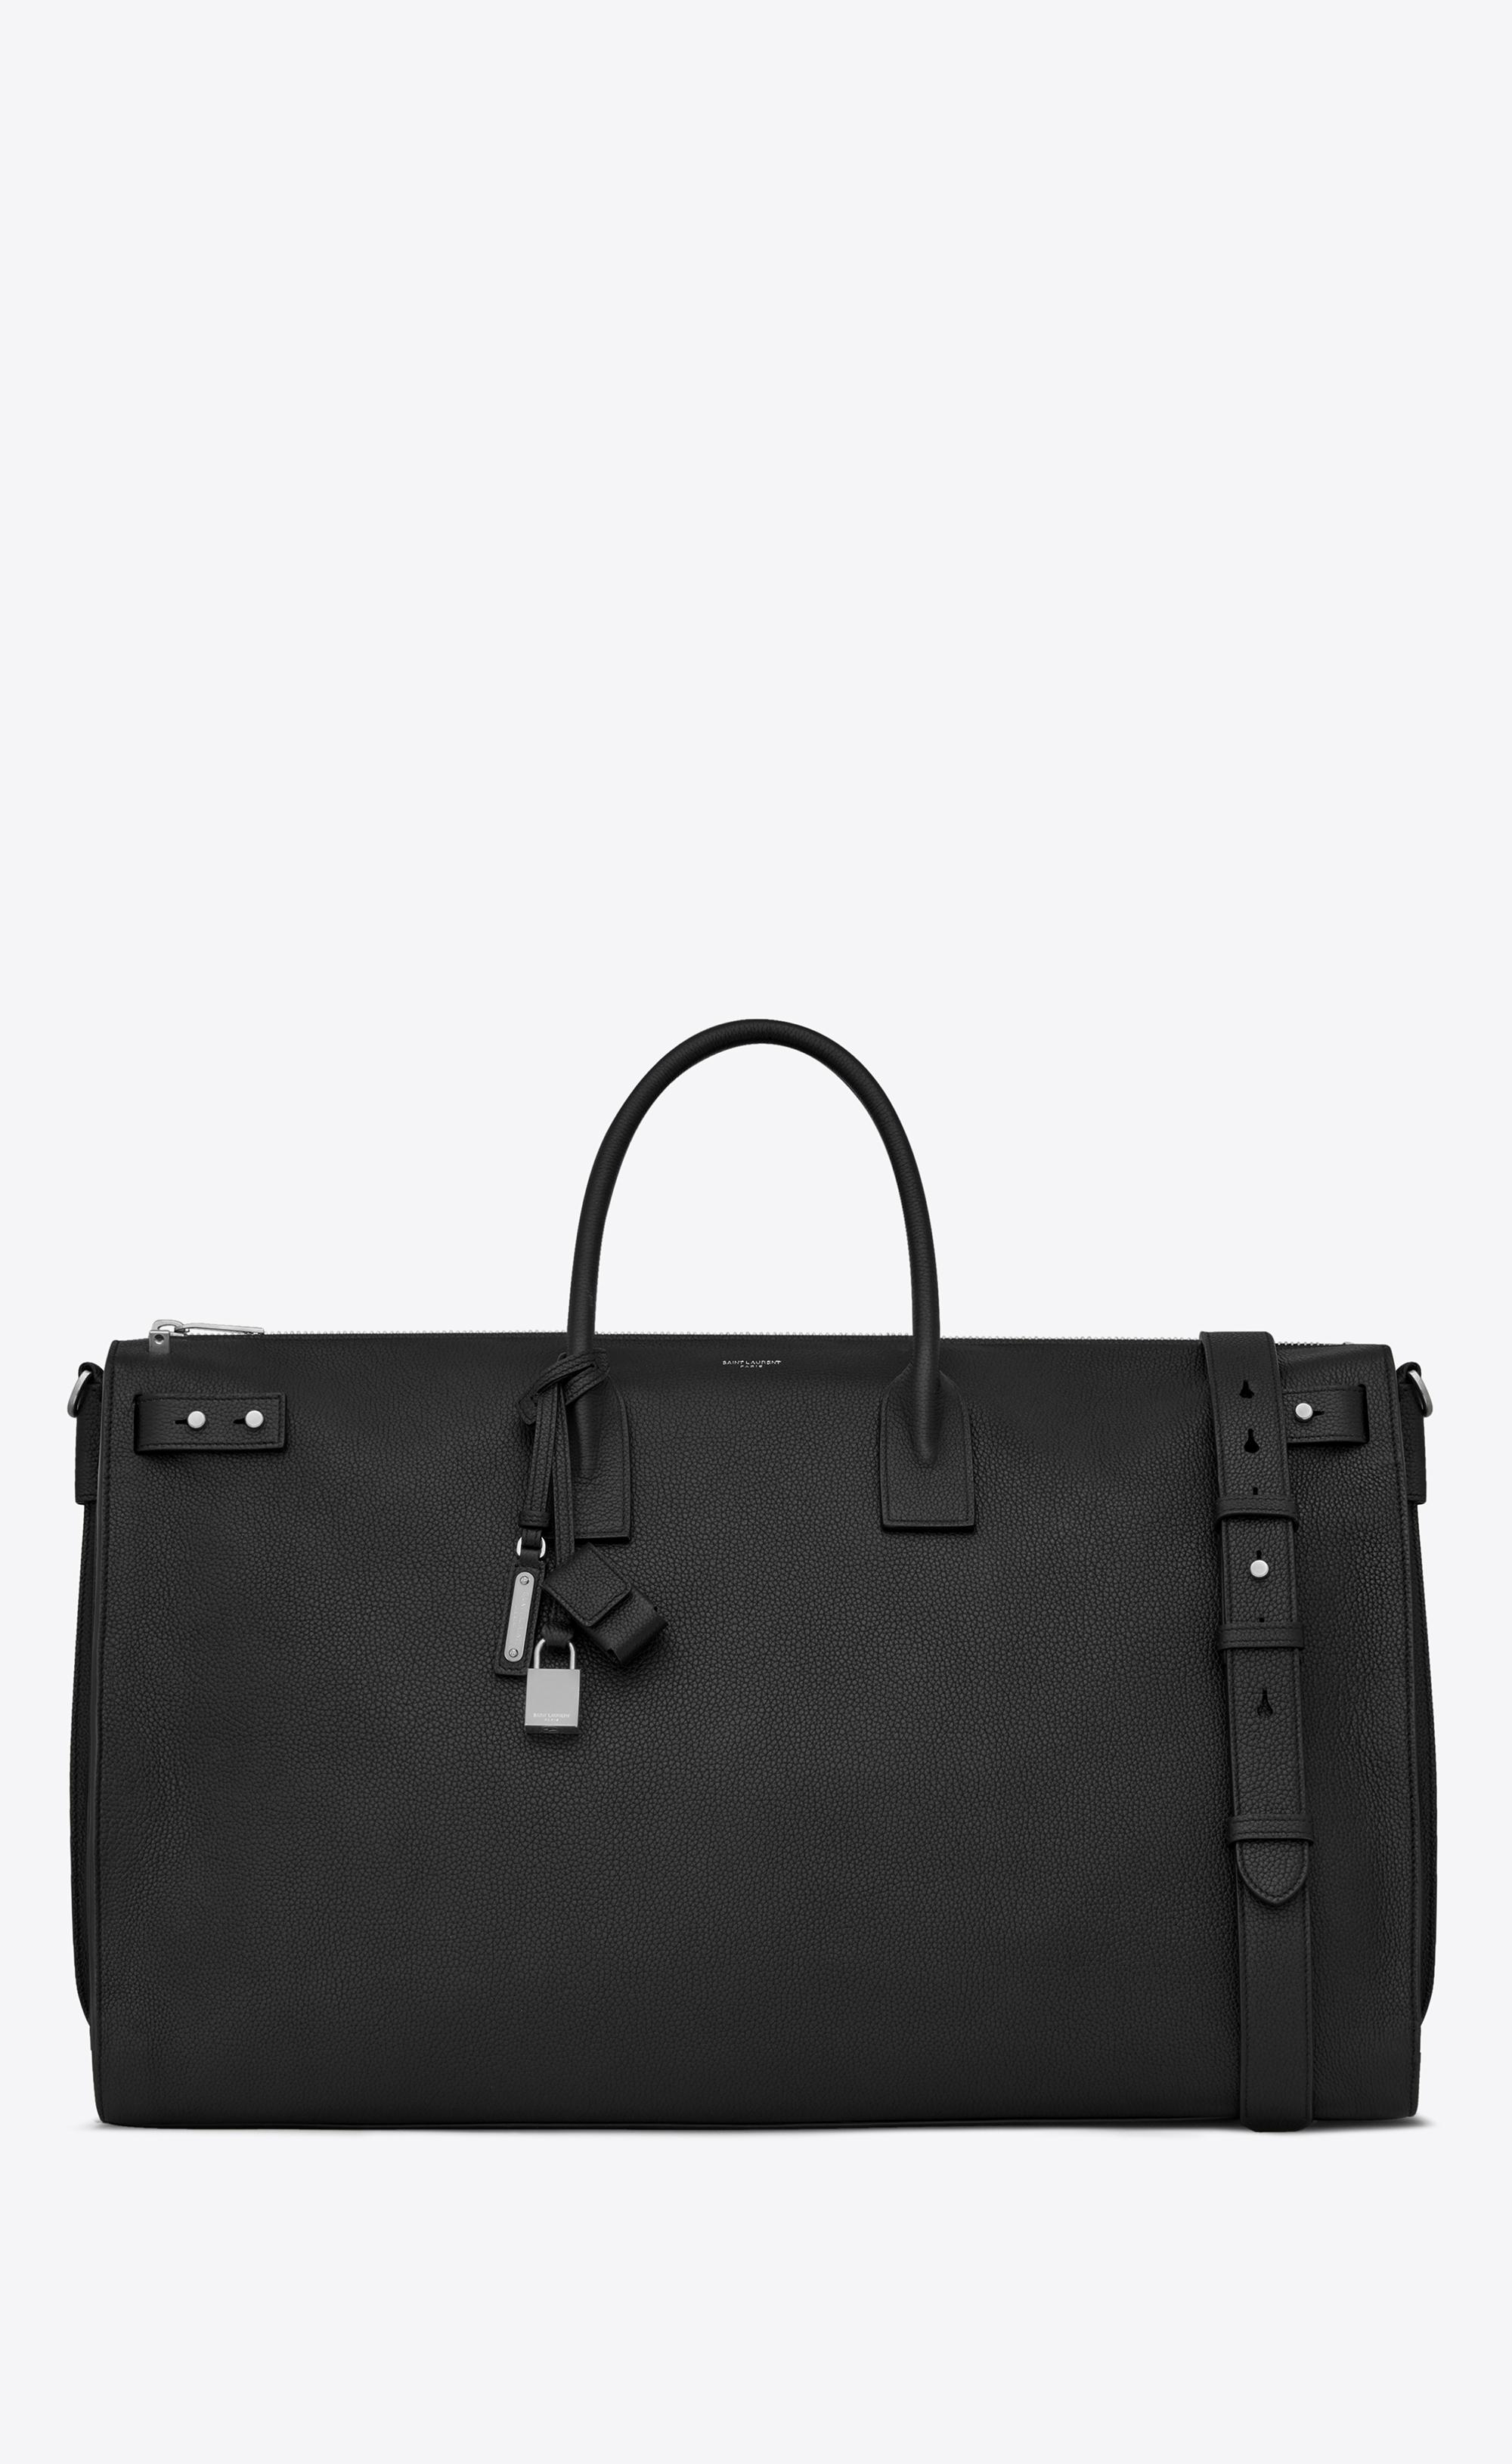 saint laurent sac de jour souple 72h duffle bag in black grained leather in black for men lyst. Black Bedroom Furniture Sets. Home Design Ideas